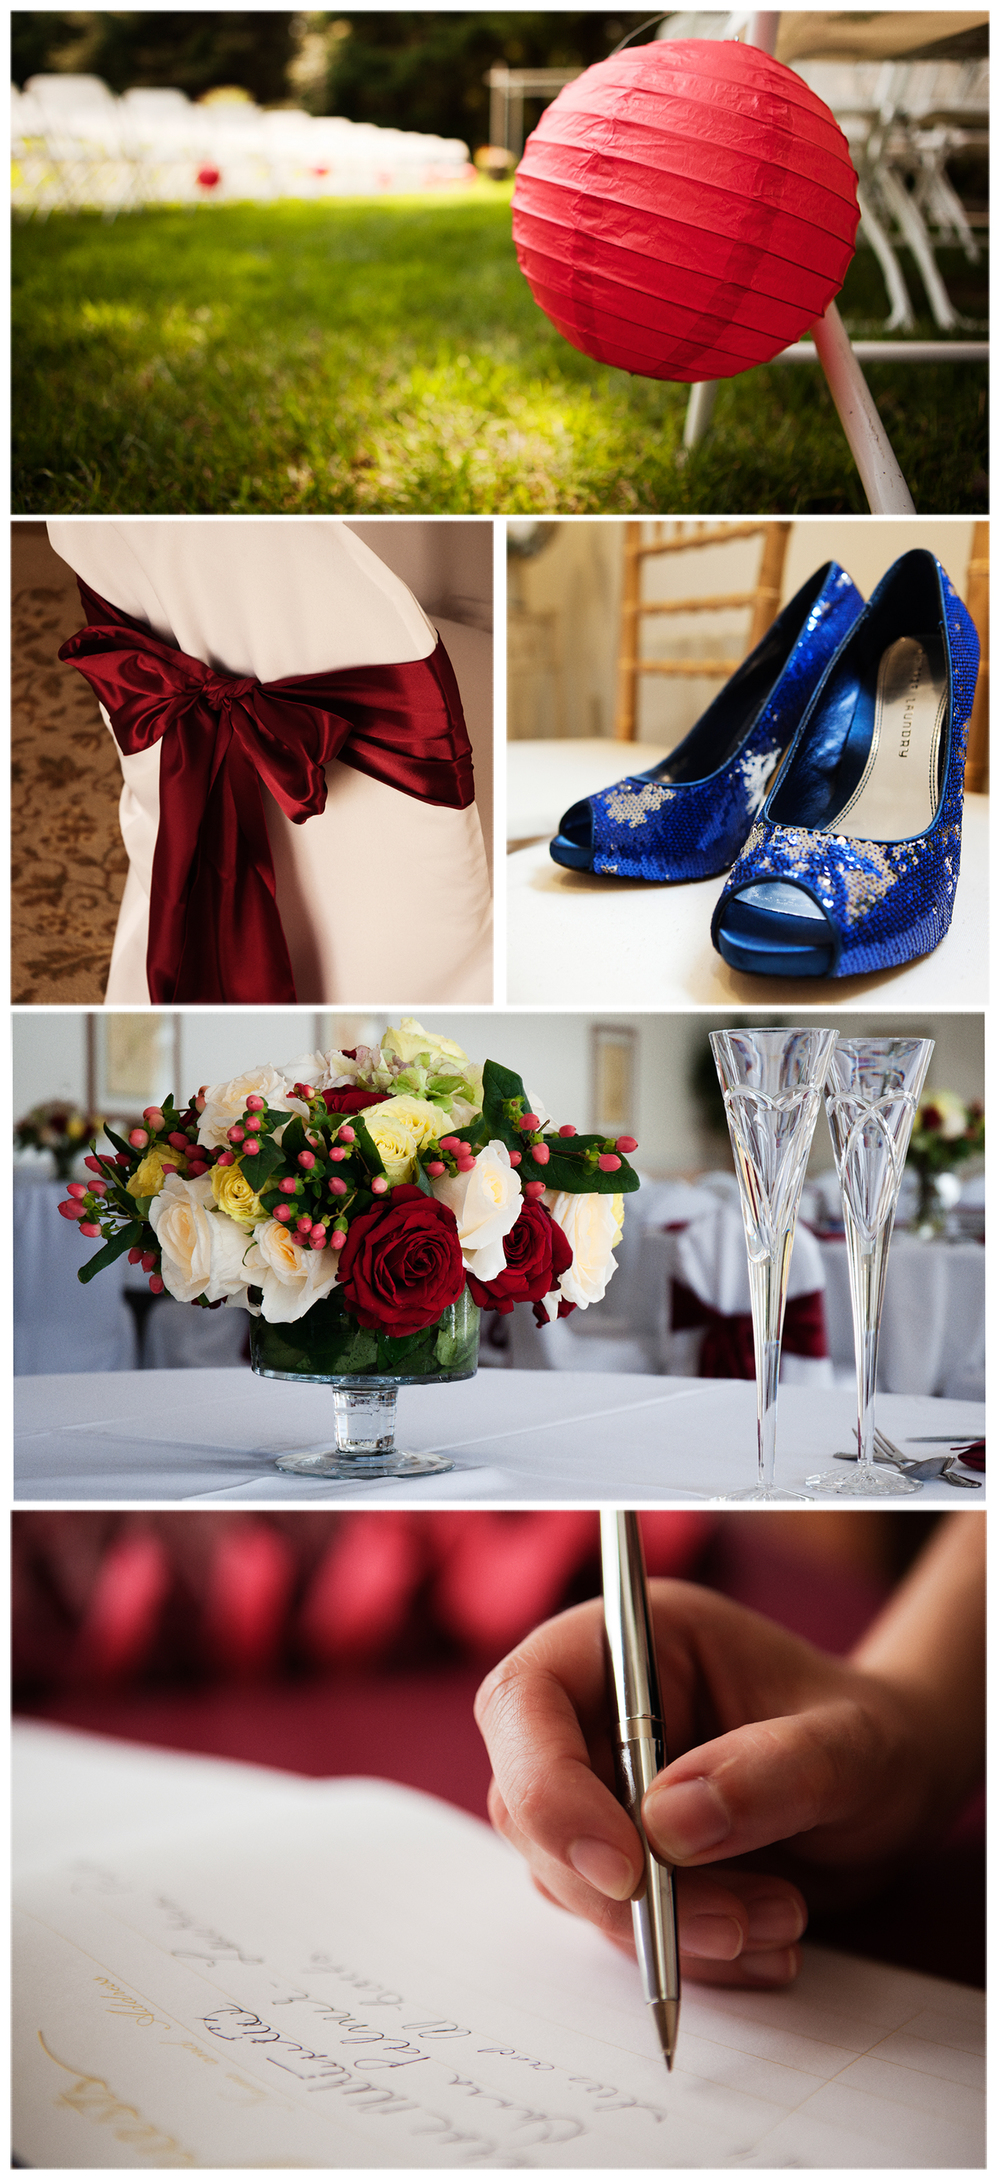 Massachusetts Wedding Photography: Details from a wedding at the Brookmeadow Country Club in Canton, MA. Including decor, shoes and registry book.